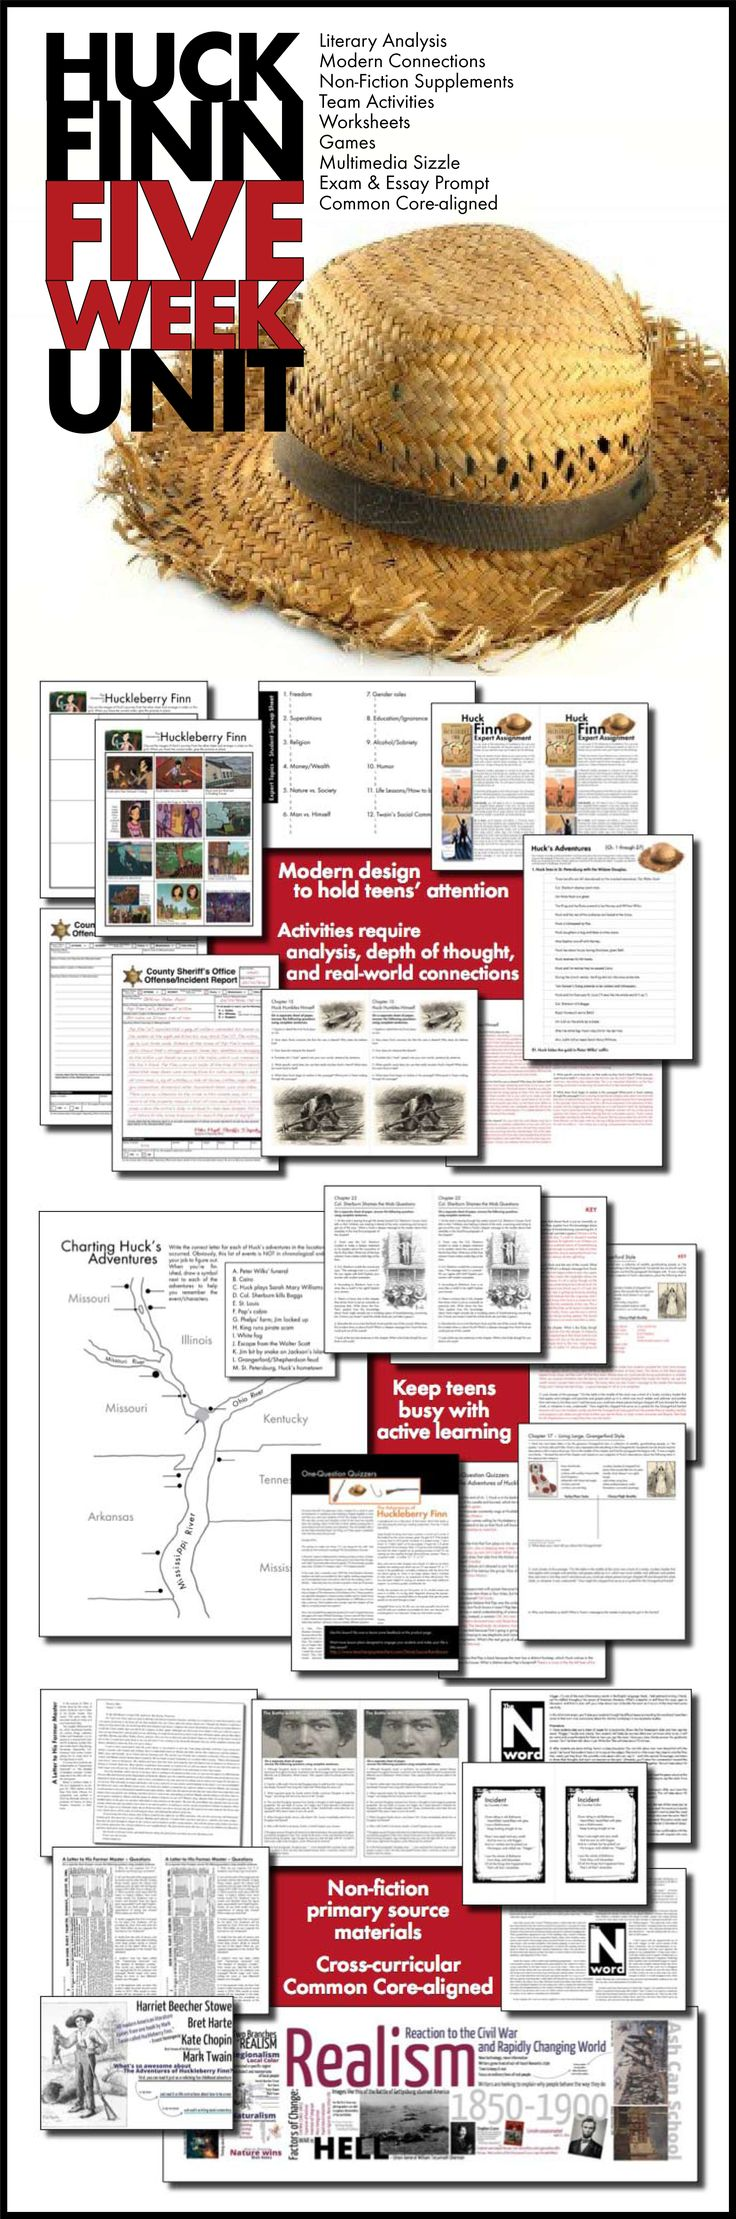 95 best literature images on pinterest classical education bring energy and excitement to your unit on the adventures of huckleberry finn with this massive bundle of beautifully designed materials that will take fandeluxe Choice Image